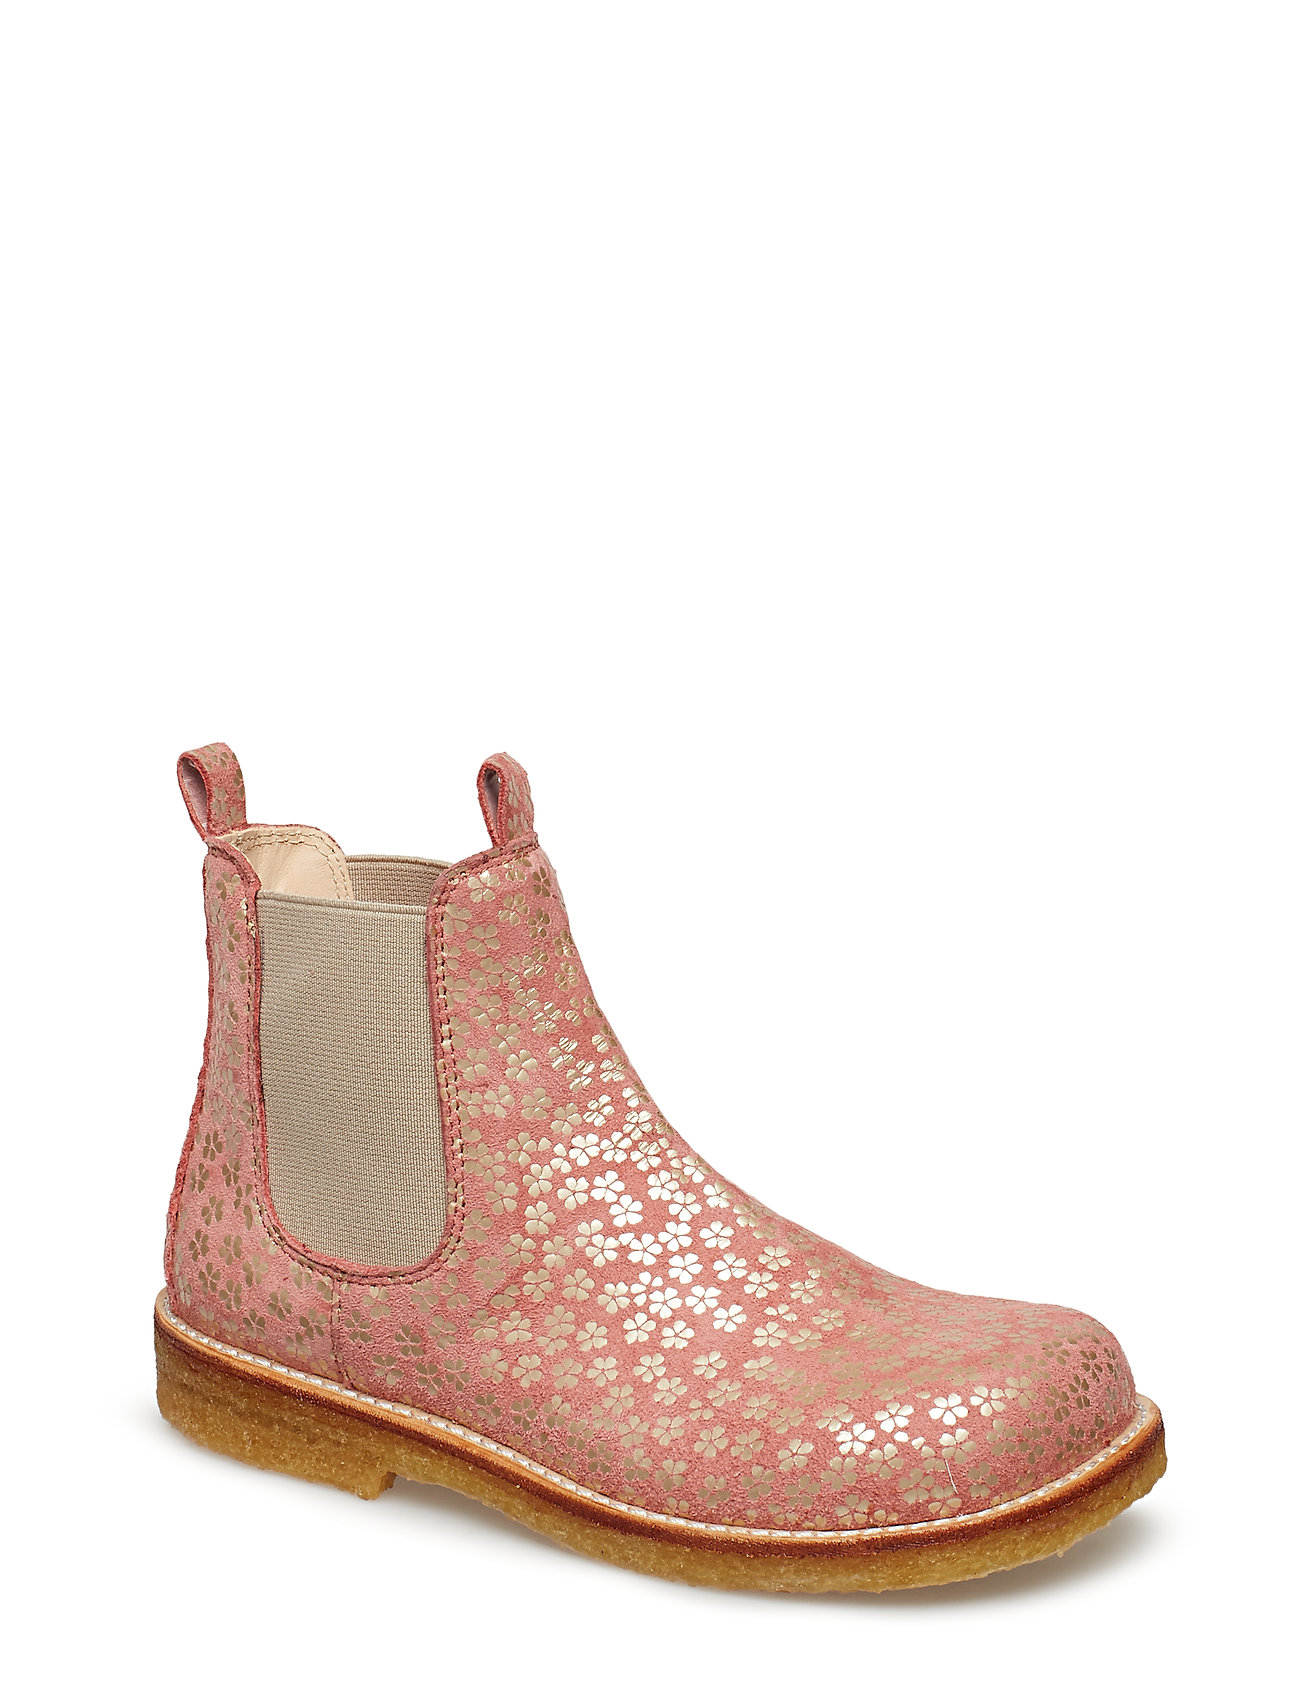 ANGULUS Booties - flat - with elastic - 2491/010 CORAL FLOWER/BEIGE